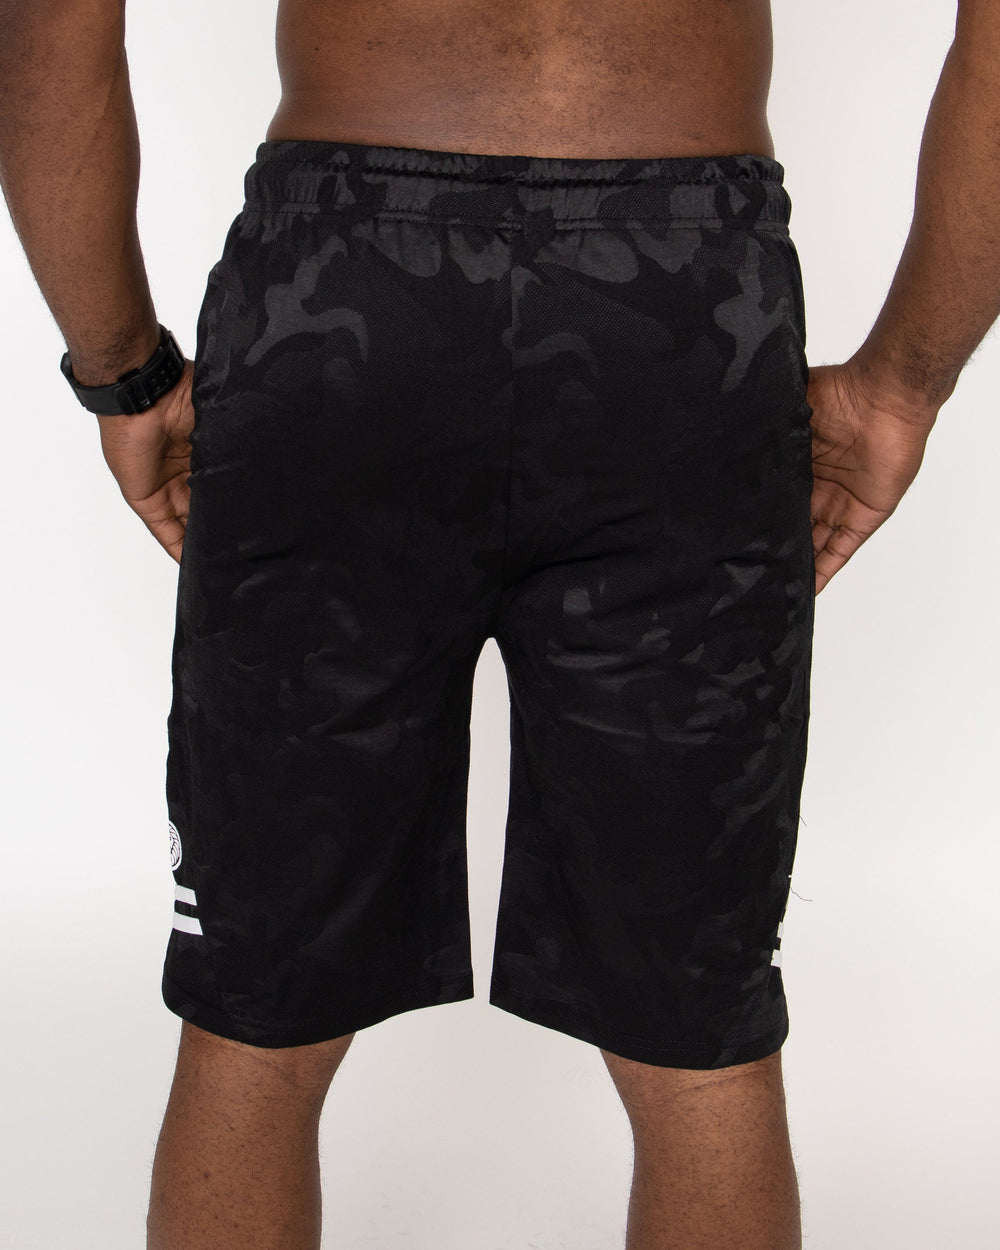 Ultra Stretch Shorts - Dark Camo Men's Shorts STAIX